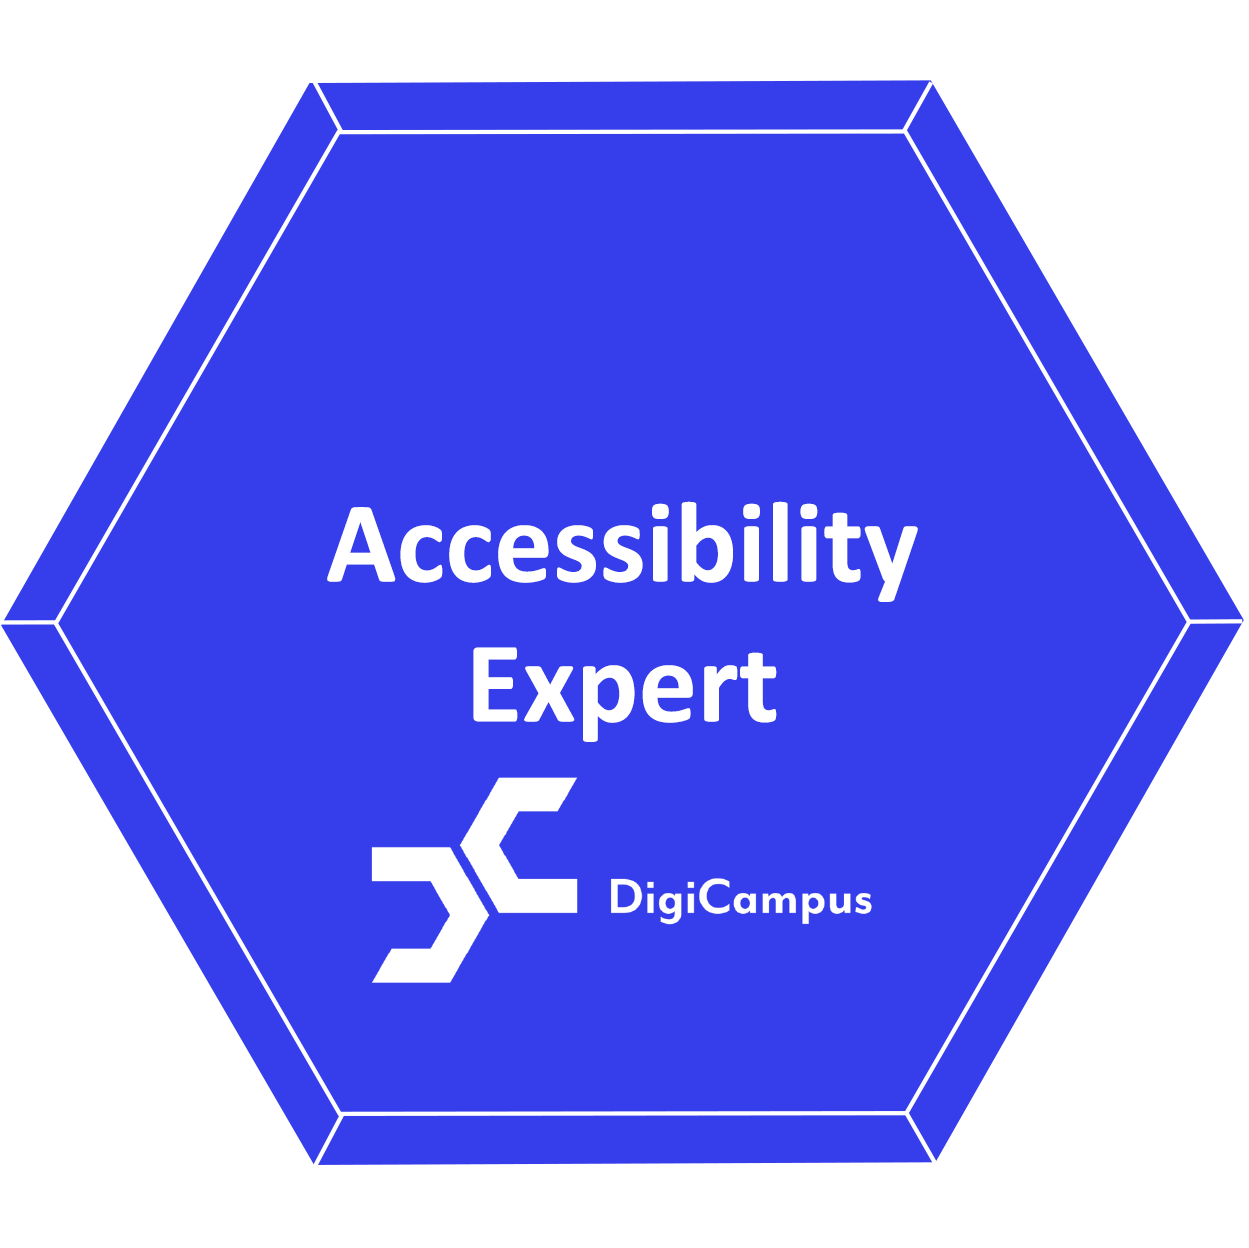 Accessibility Expert badge